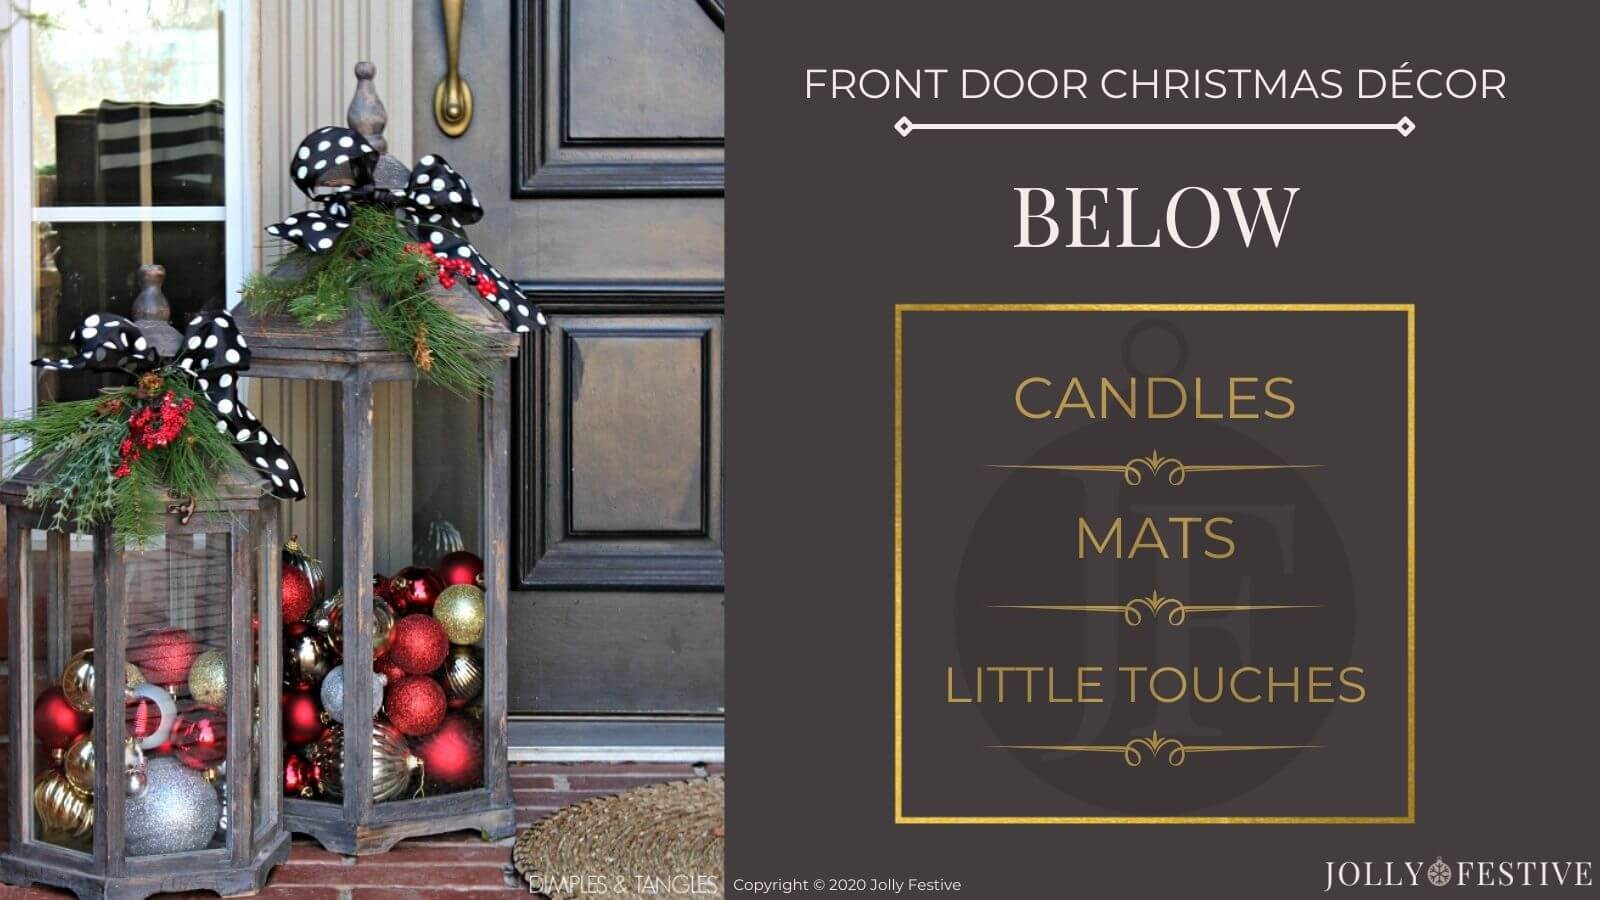 Front Door Christmas Décor - Ideas for Below - candles, mats and little touches